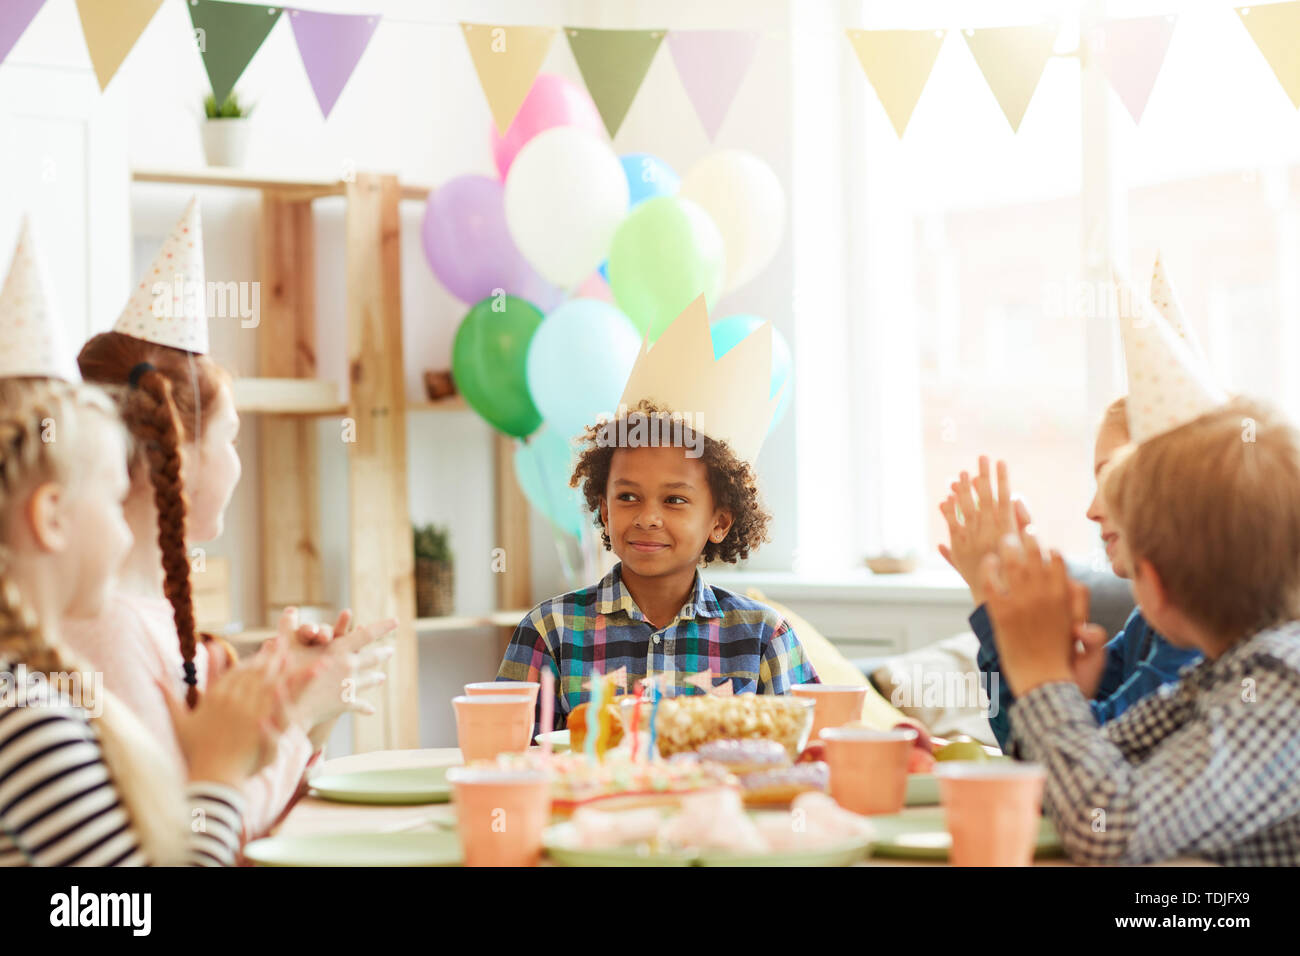 Portrait of smiling African-American boy wearing crown sitting at table while celebrating Birthday with friends, copy space Stock Photo